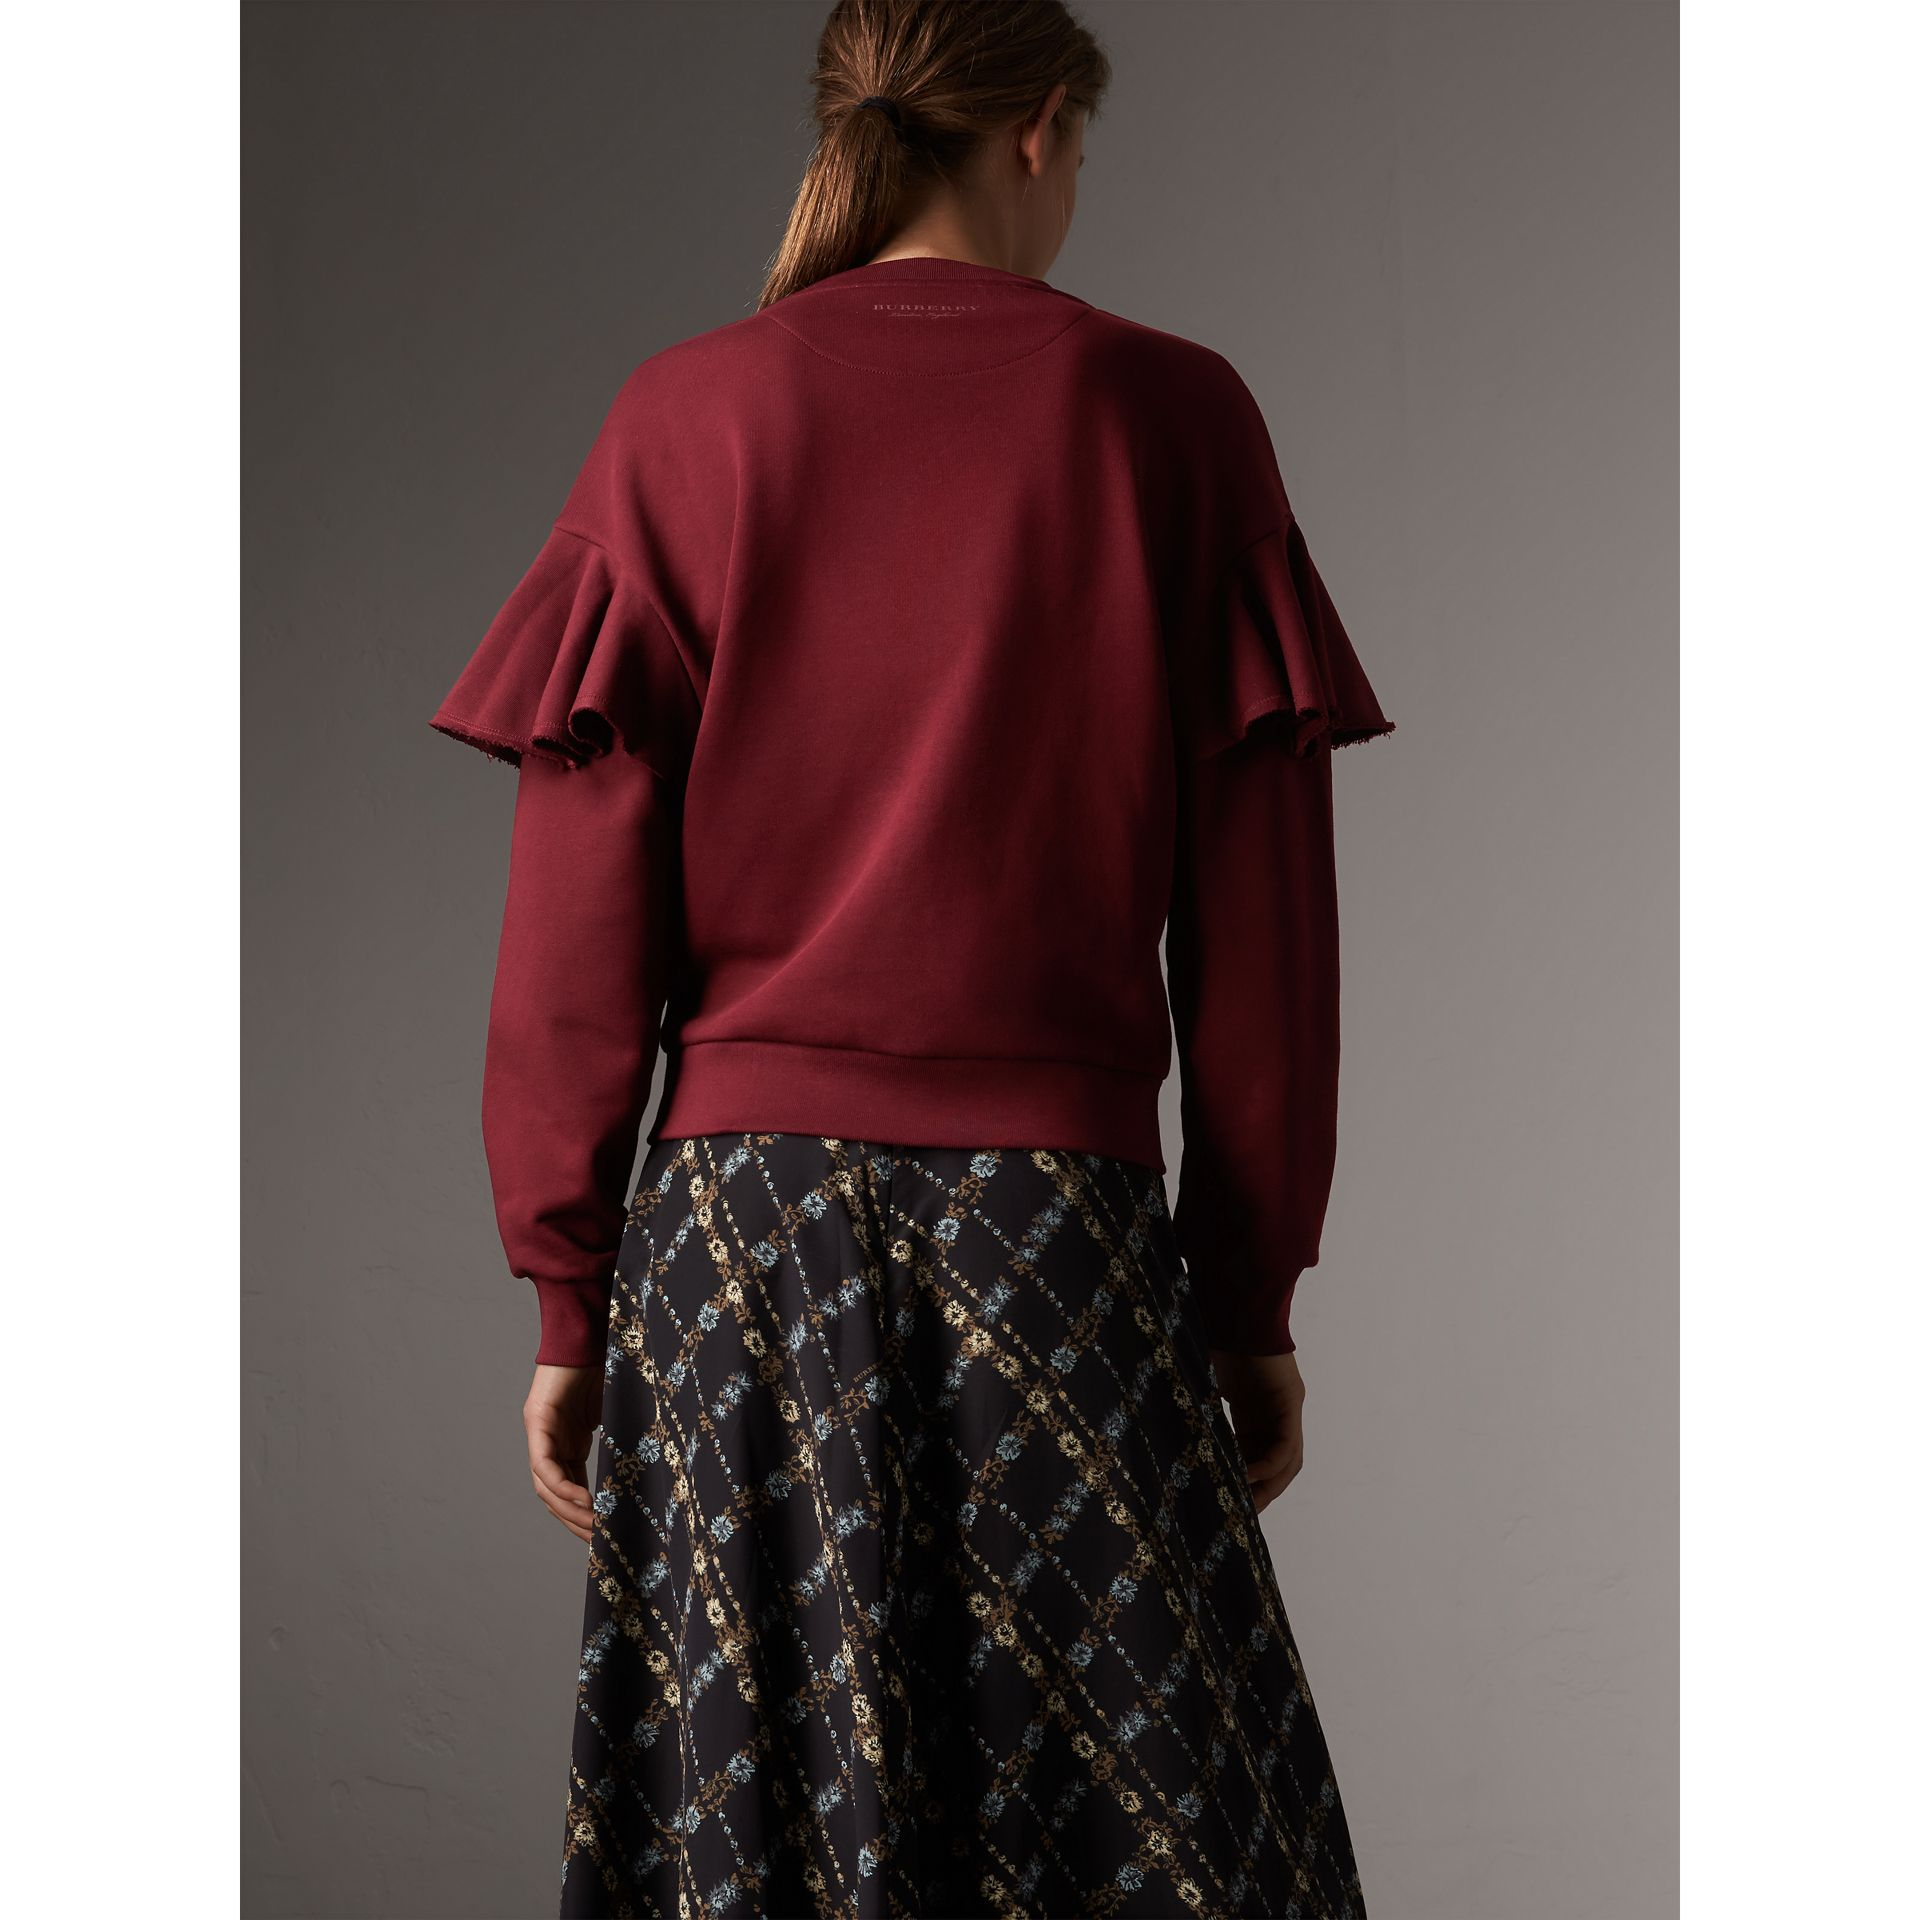 Ruffle Detail Cotton Jersey Sweatshirt in Dark Plum - Women | Burberry - gallery image 3